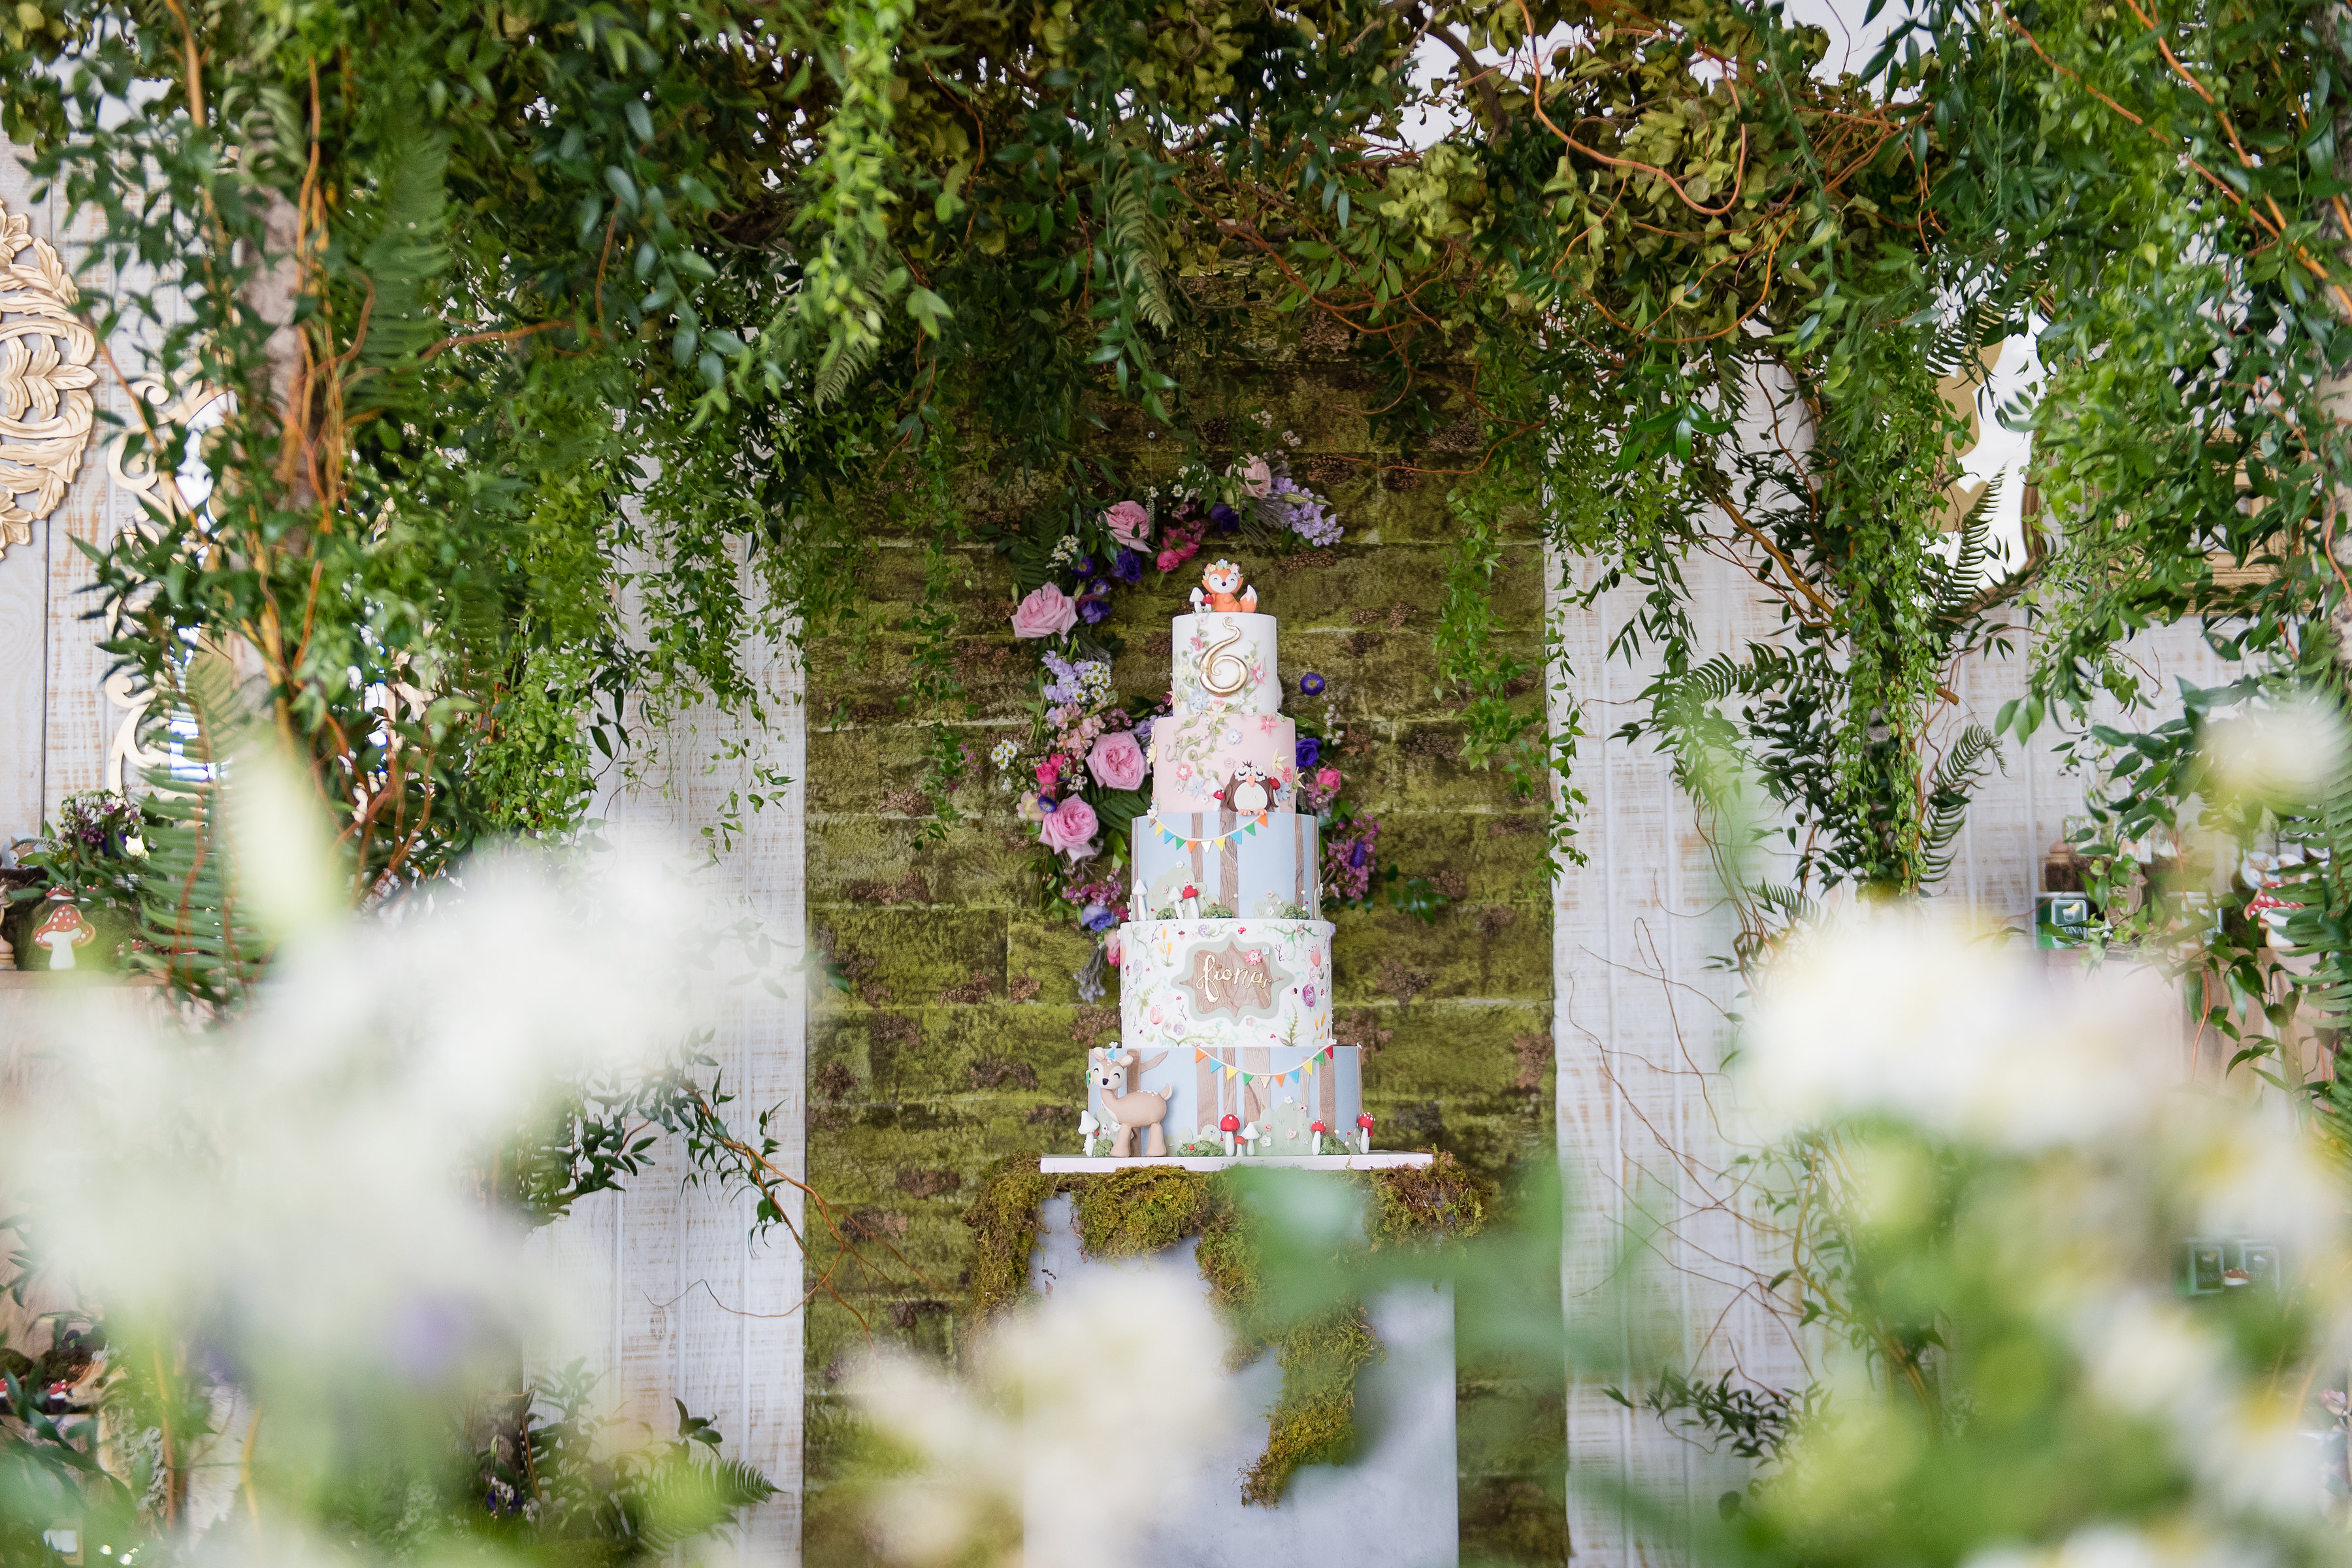 Fiona's Woodland - One Inspired Party